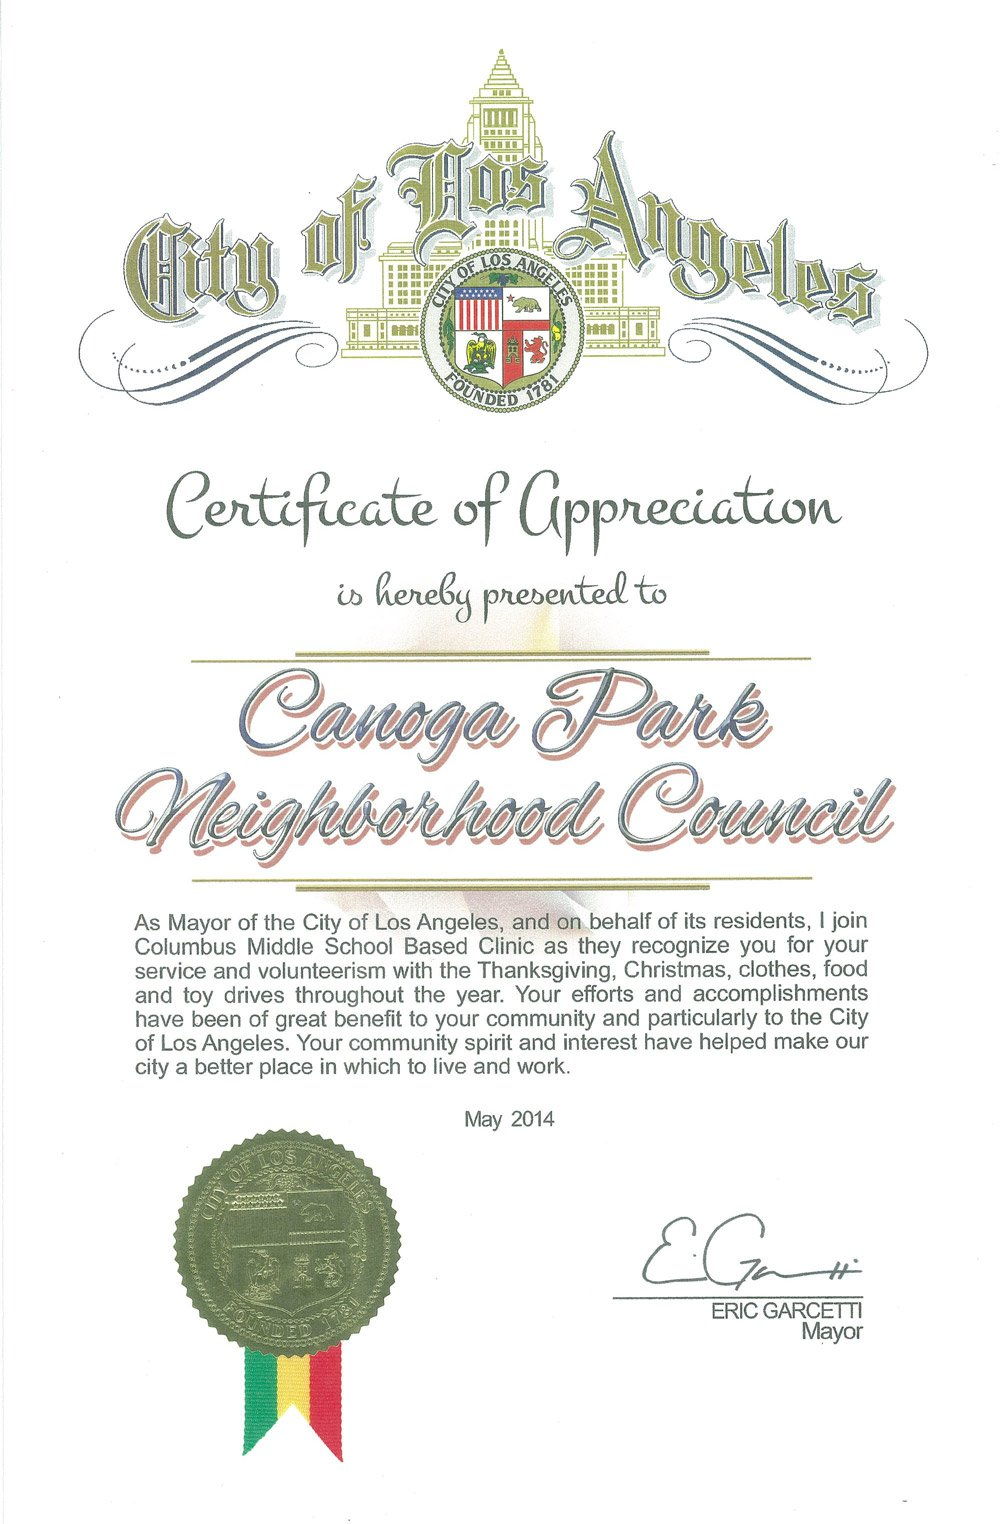 Certificates of Recognition for the Canoga Park Neighborhood Council